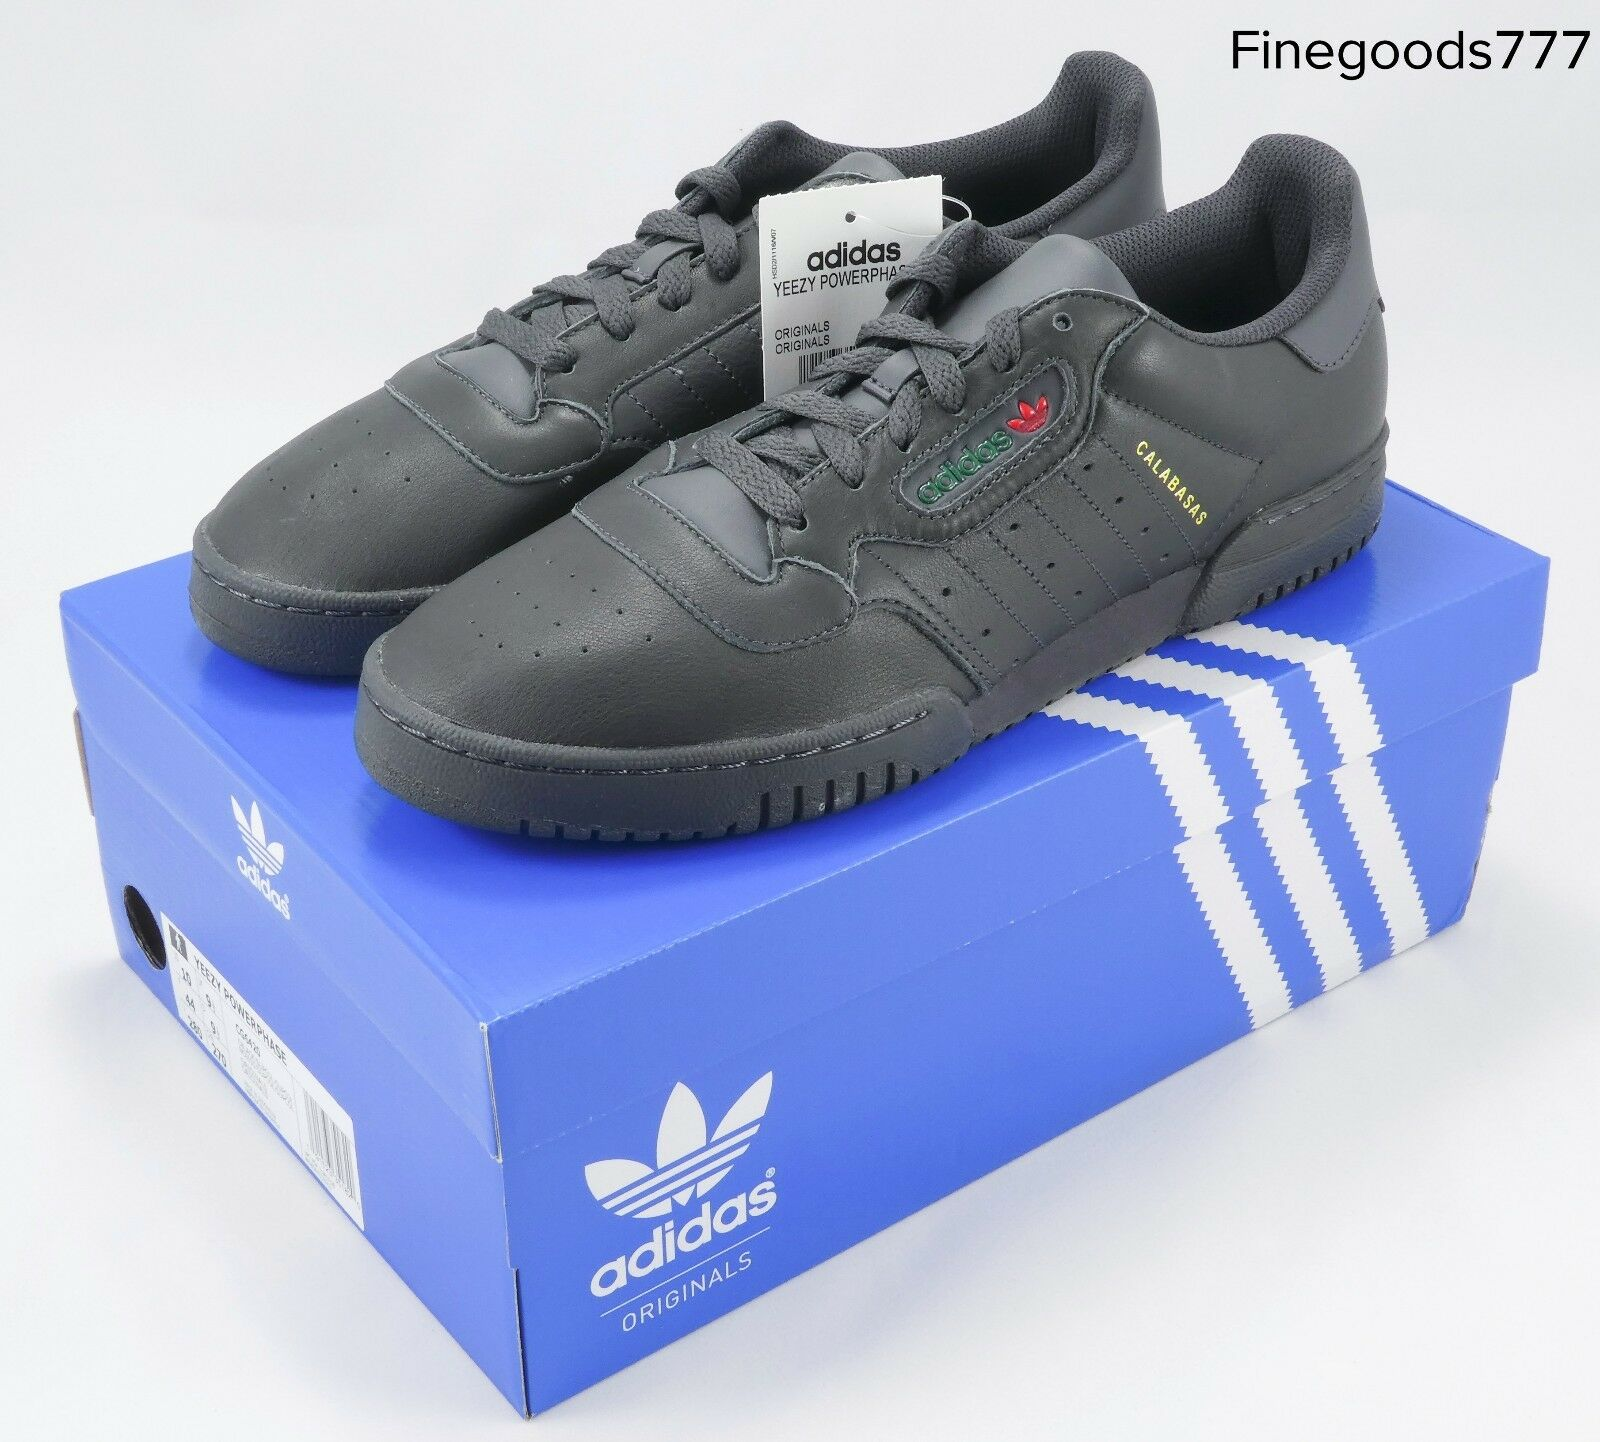 New Yeezy PowerPhase Core Black Men's Athletic Fashion Sneakers CG6420 Size 10